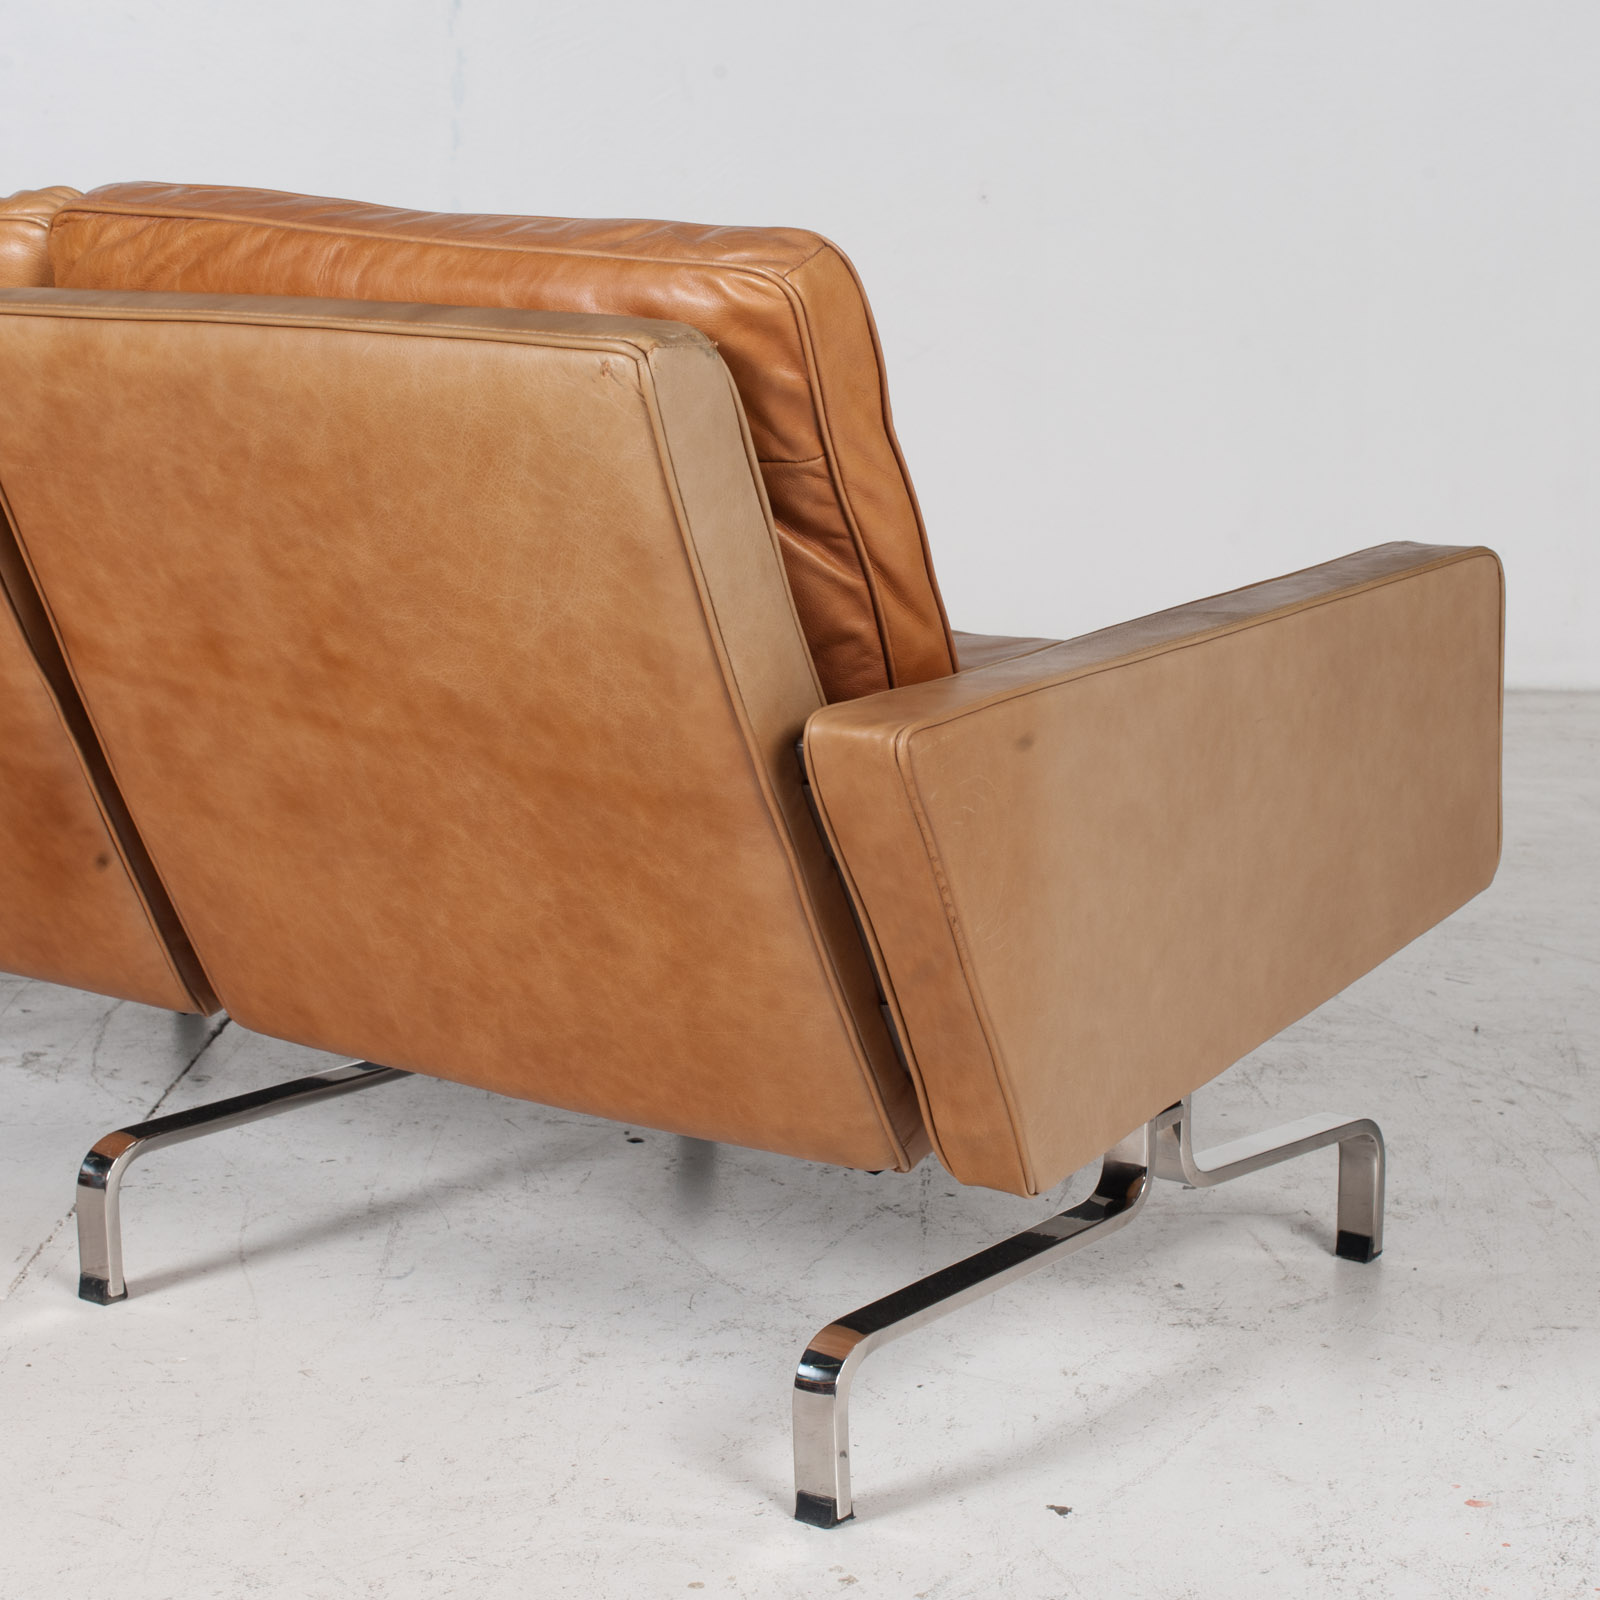 3 Seat Sofa By Poul Kjaerholm For Ejvind Kold Christensen In Tan Leather And Chrome, 1960s, Denmark 10